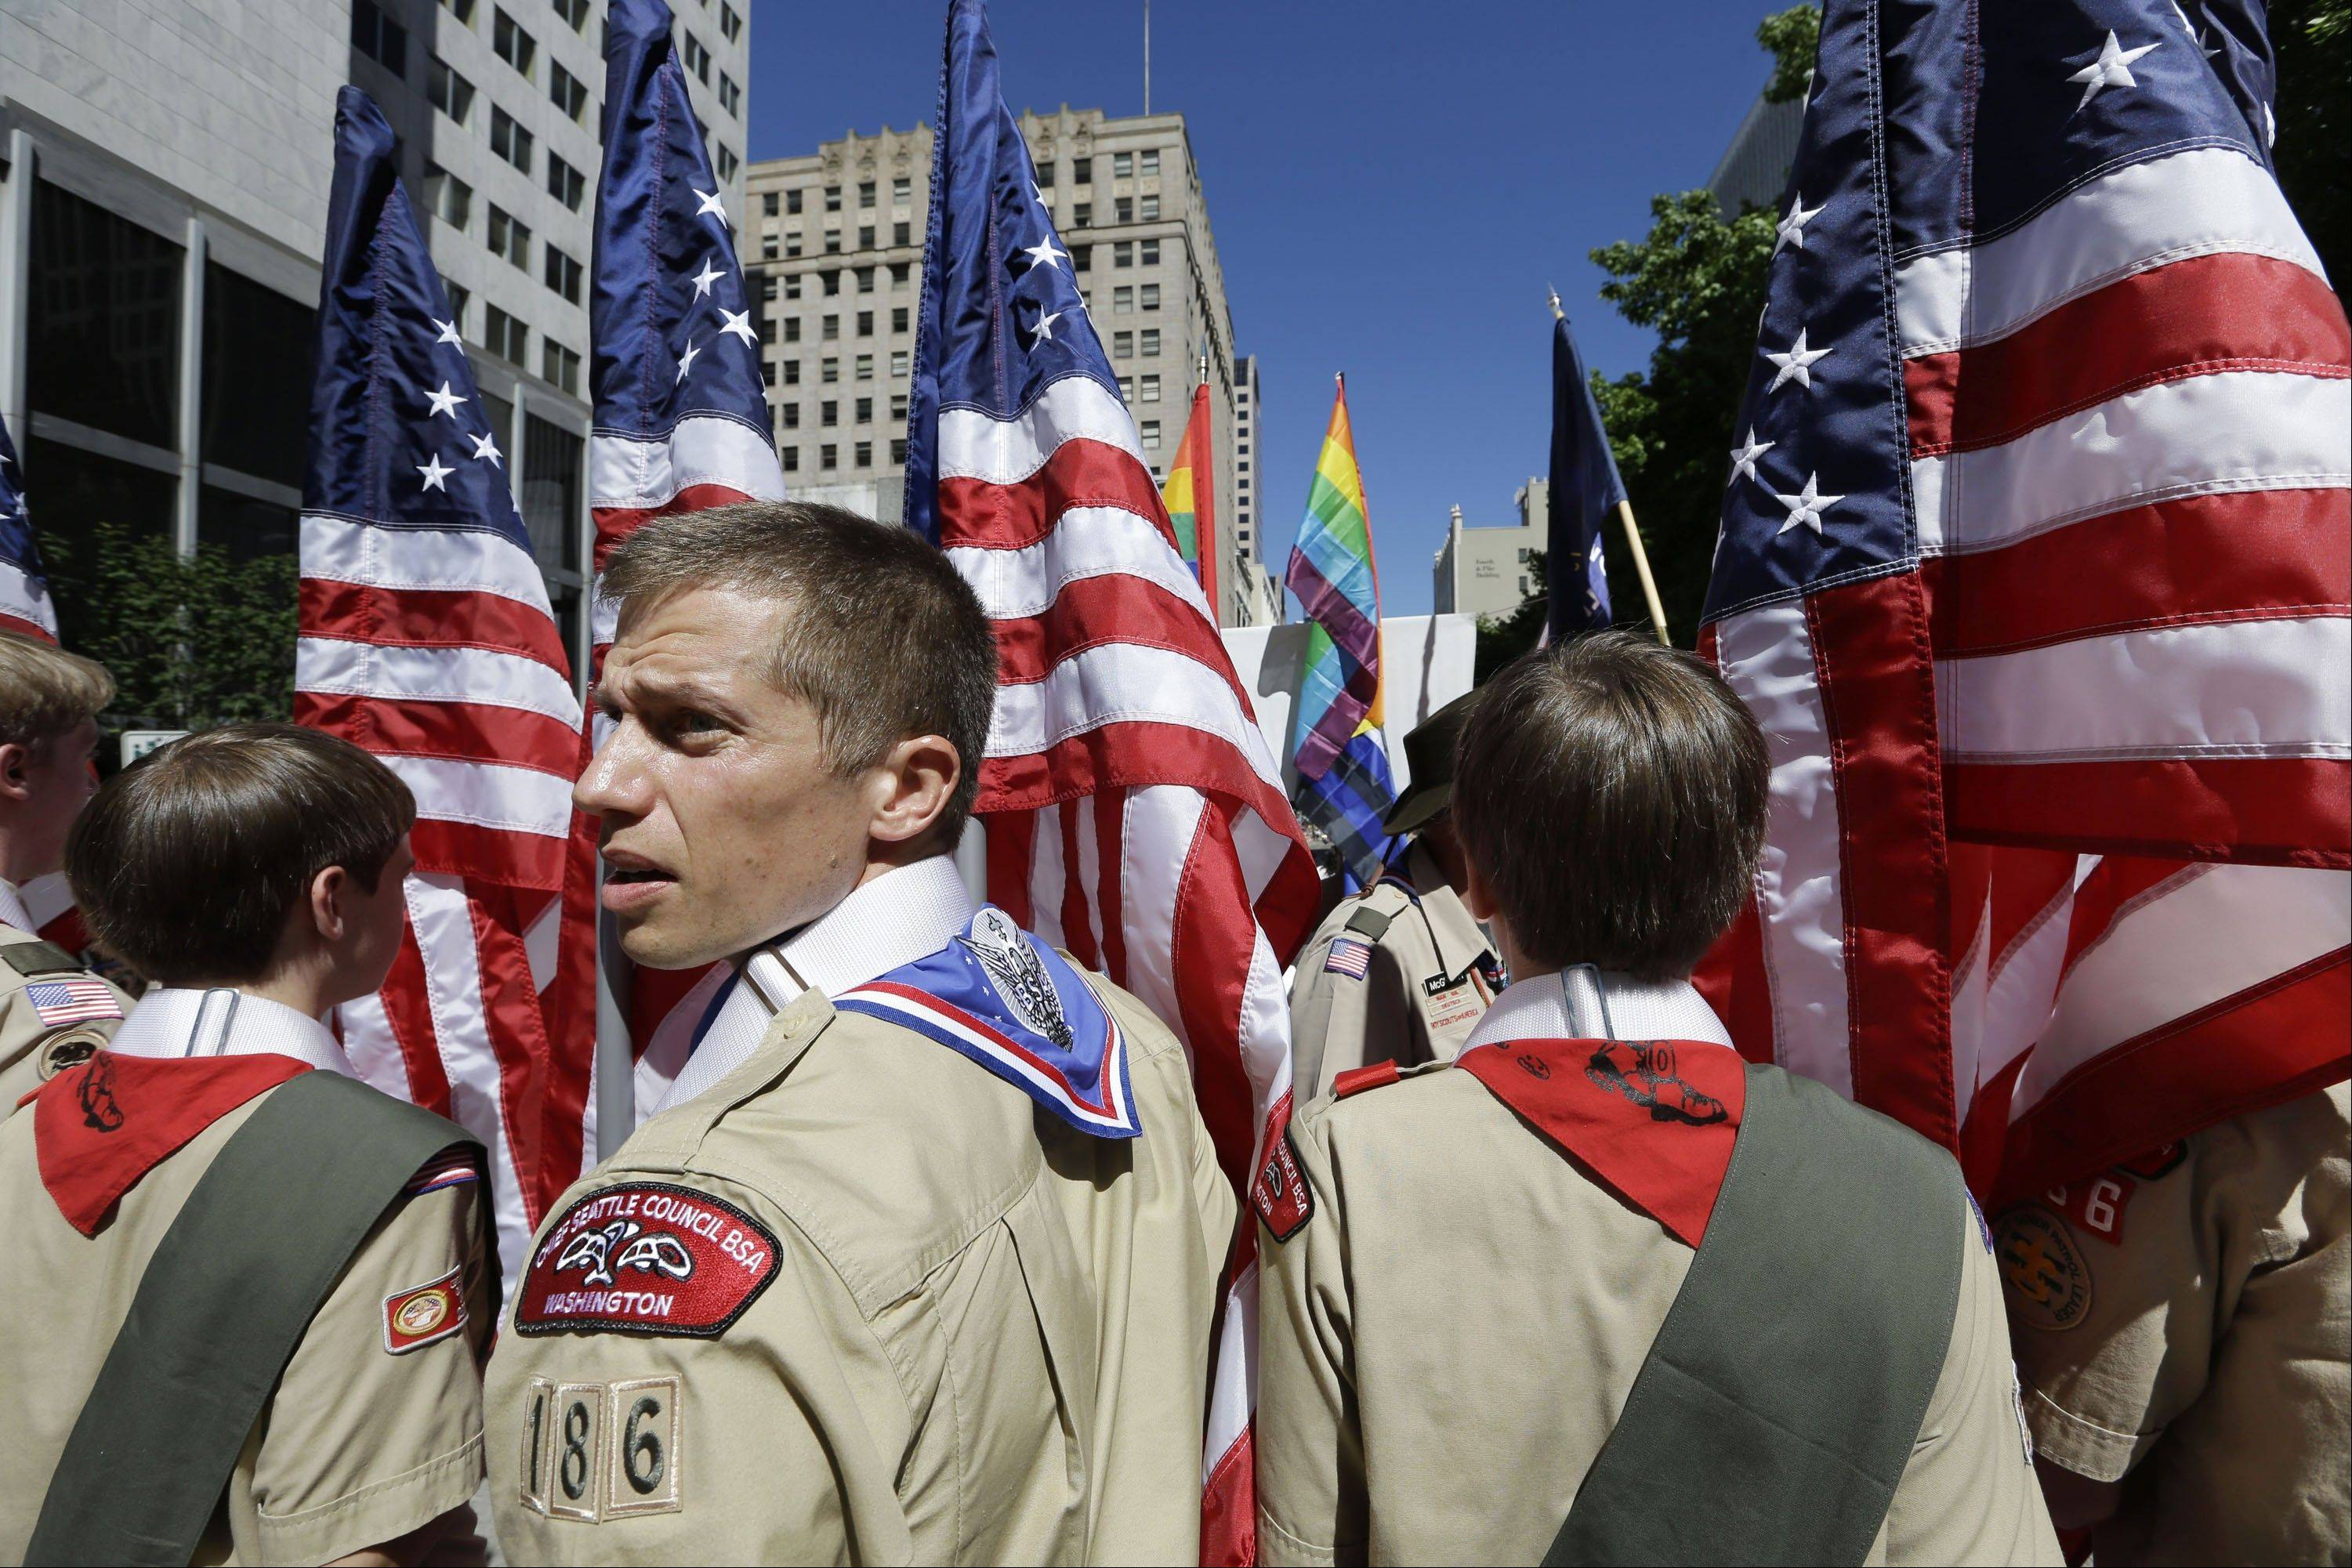 Boy Scouts from the Chief Seattle Council carry U.S. flags as they prepare to march in the Gay Pride Parade in downtown Seattle. The Boy Scouts of America, in the most contentious change of membership policy in a 103-year history, will accept openly gay youths in Scout units starting on New Year�s Day 2014.